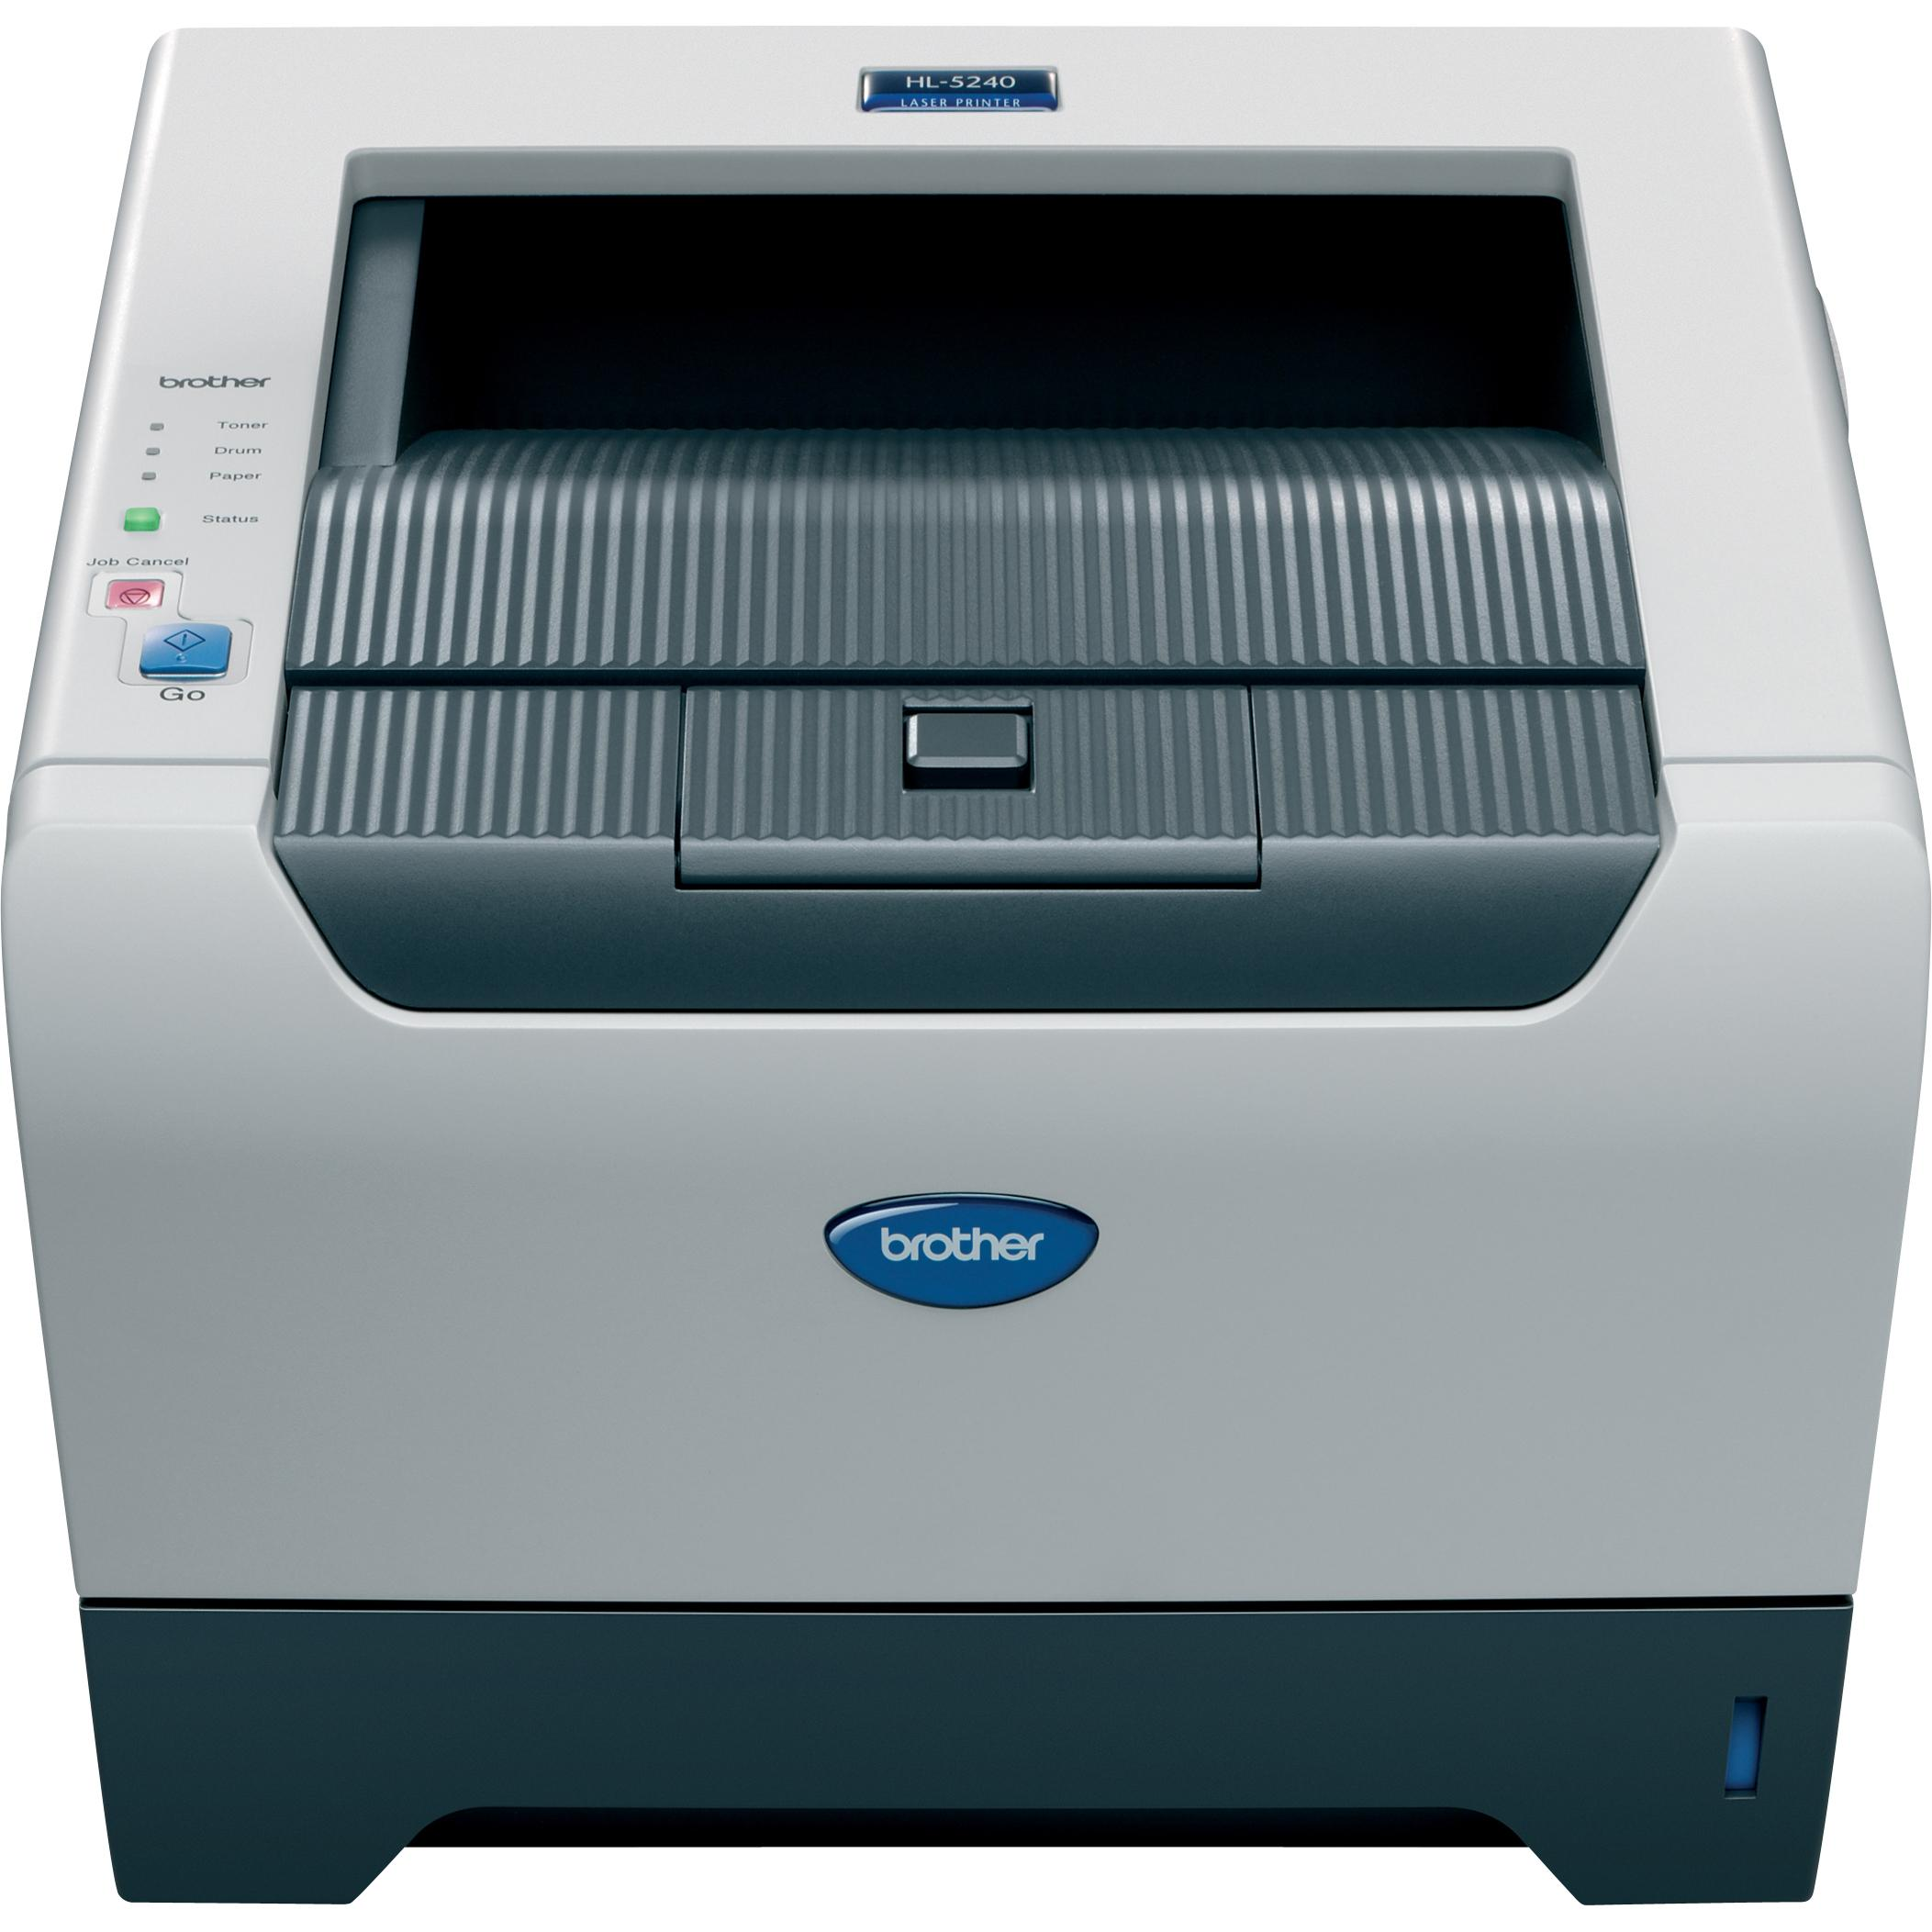 Brother HL-5240 High-Speed Desktop Office Laser Printer 0